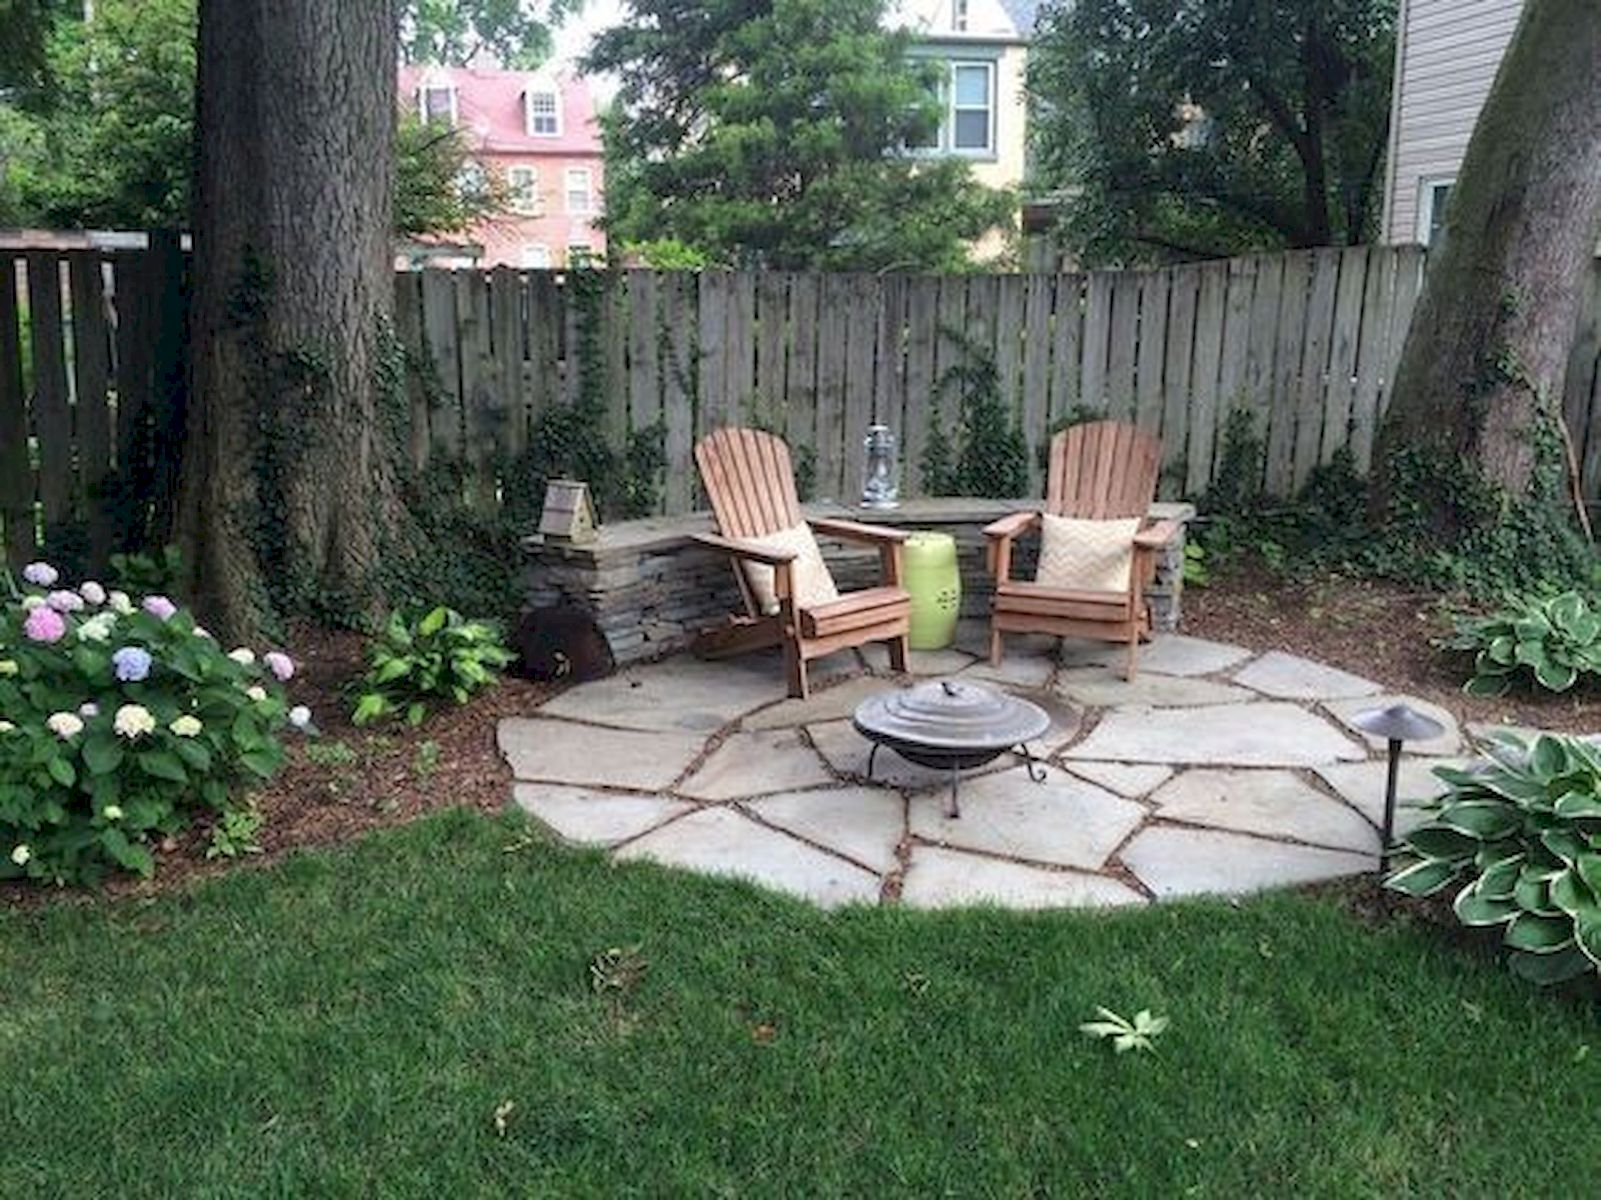 55 Beautiful Backyard Patio Ideas On A Budget - house8055.com on Small Backyard Patio Ideas On A Budget id=44296